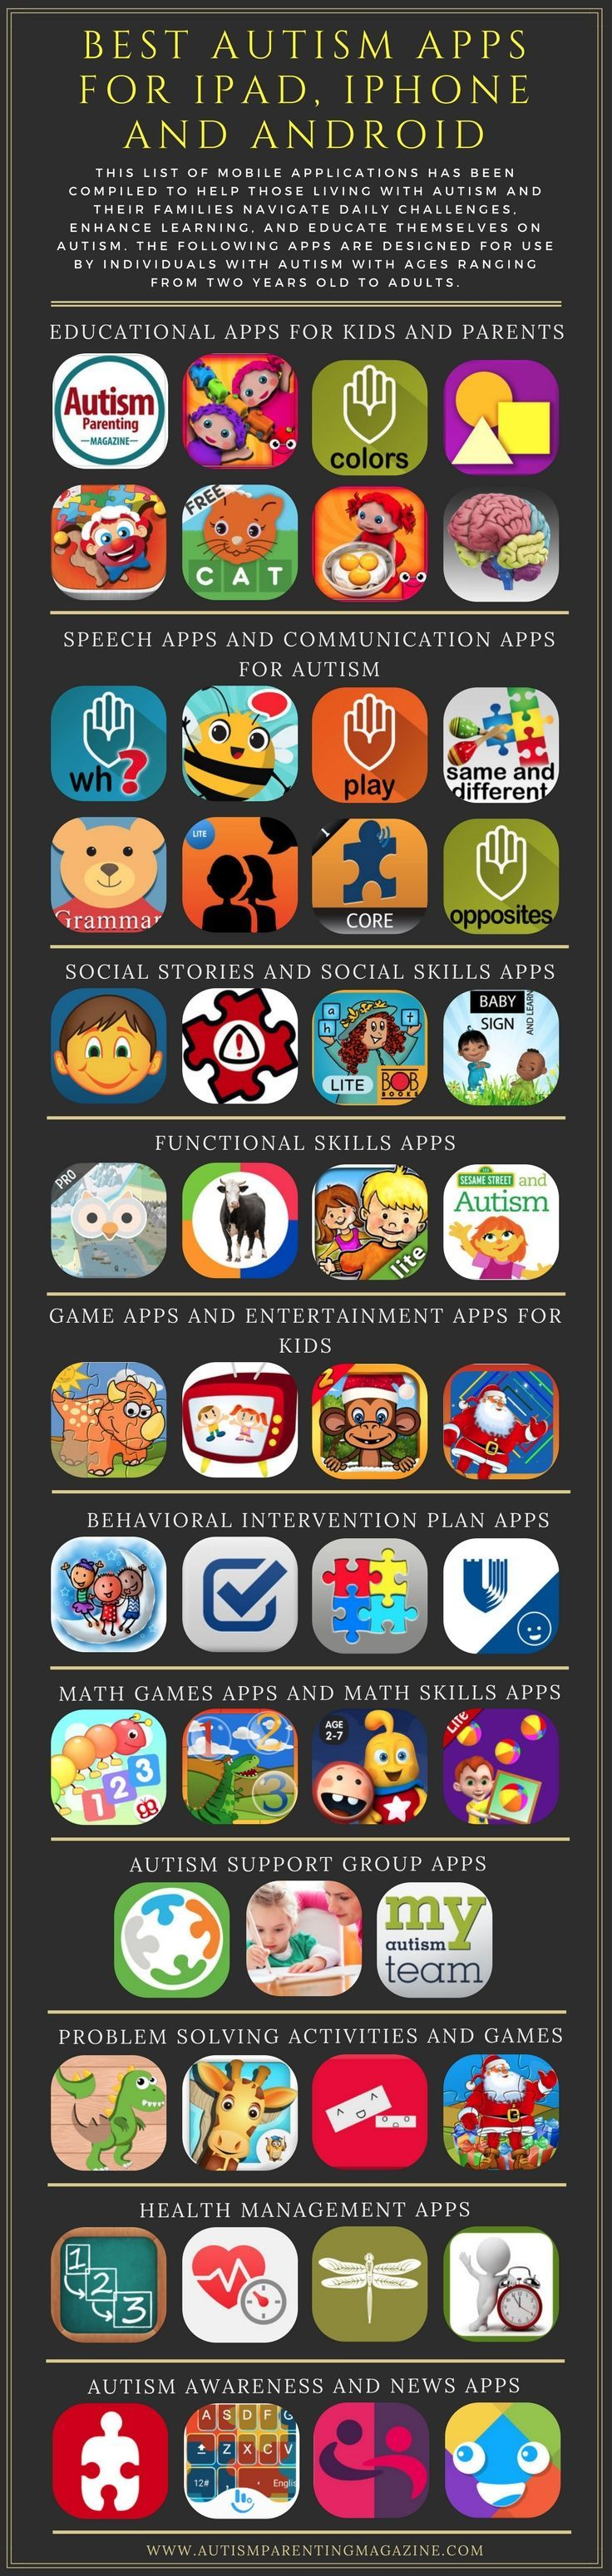 Best Autism Apps For iPad, iPhone and Android Ultimate